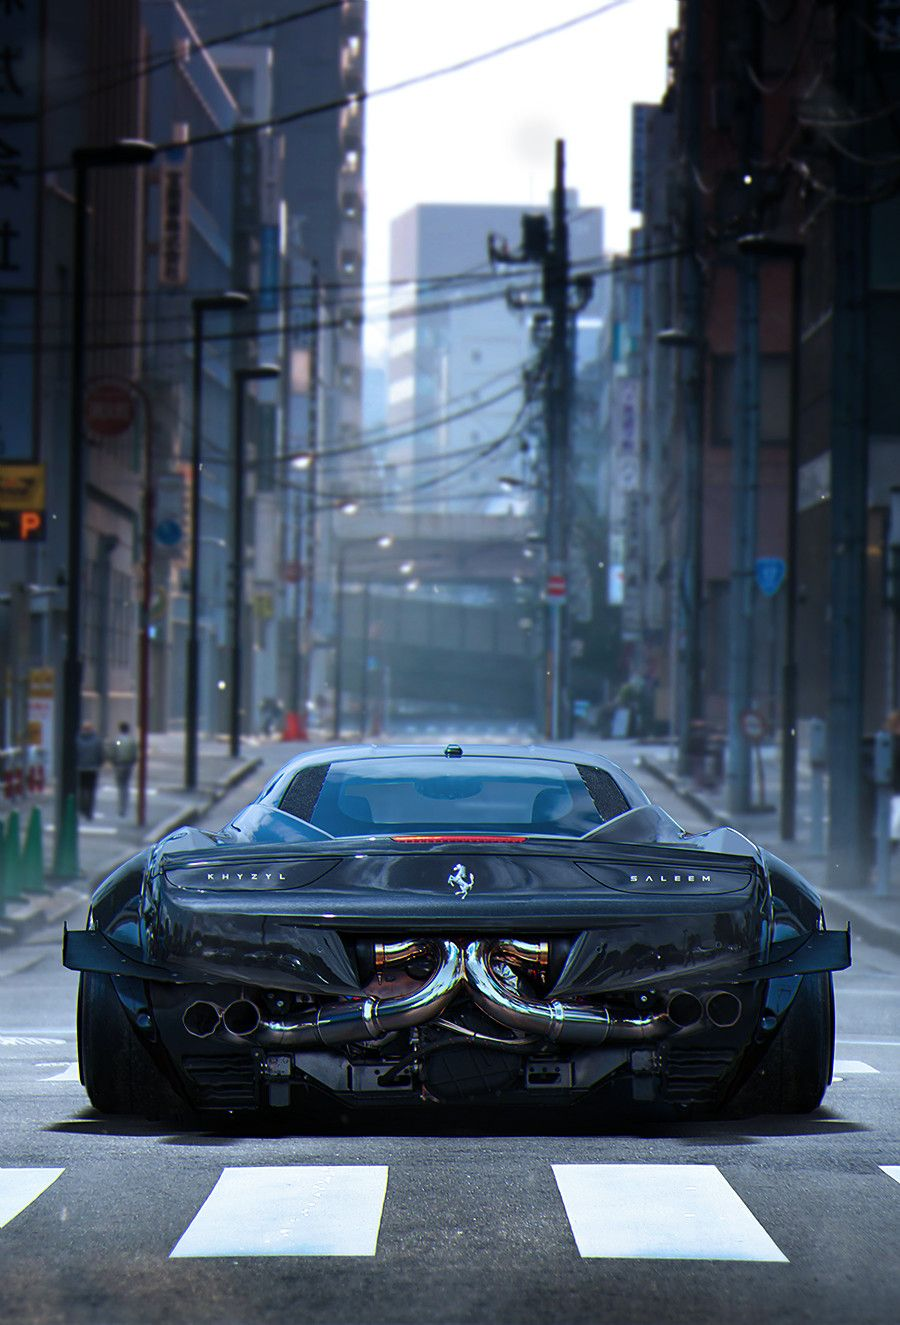 Twins Phone Wallpaper Included Khyzyl Saleem Top Luxury Cars Luxury Cars Expensive Cars